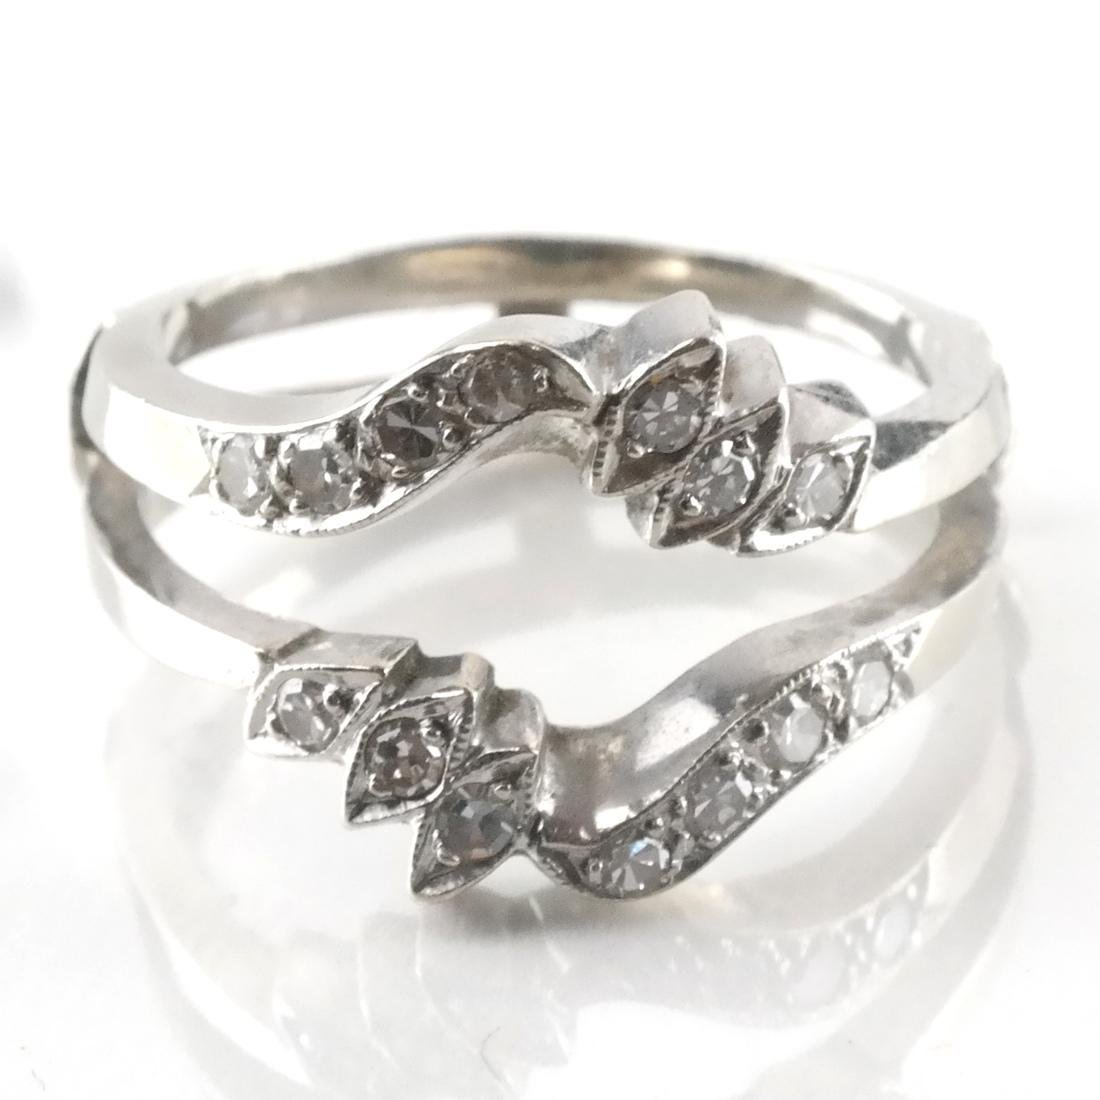 14k White Gold Inset Ring with Diamonds